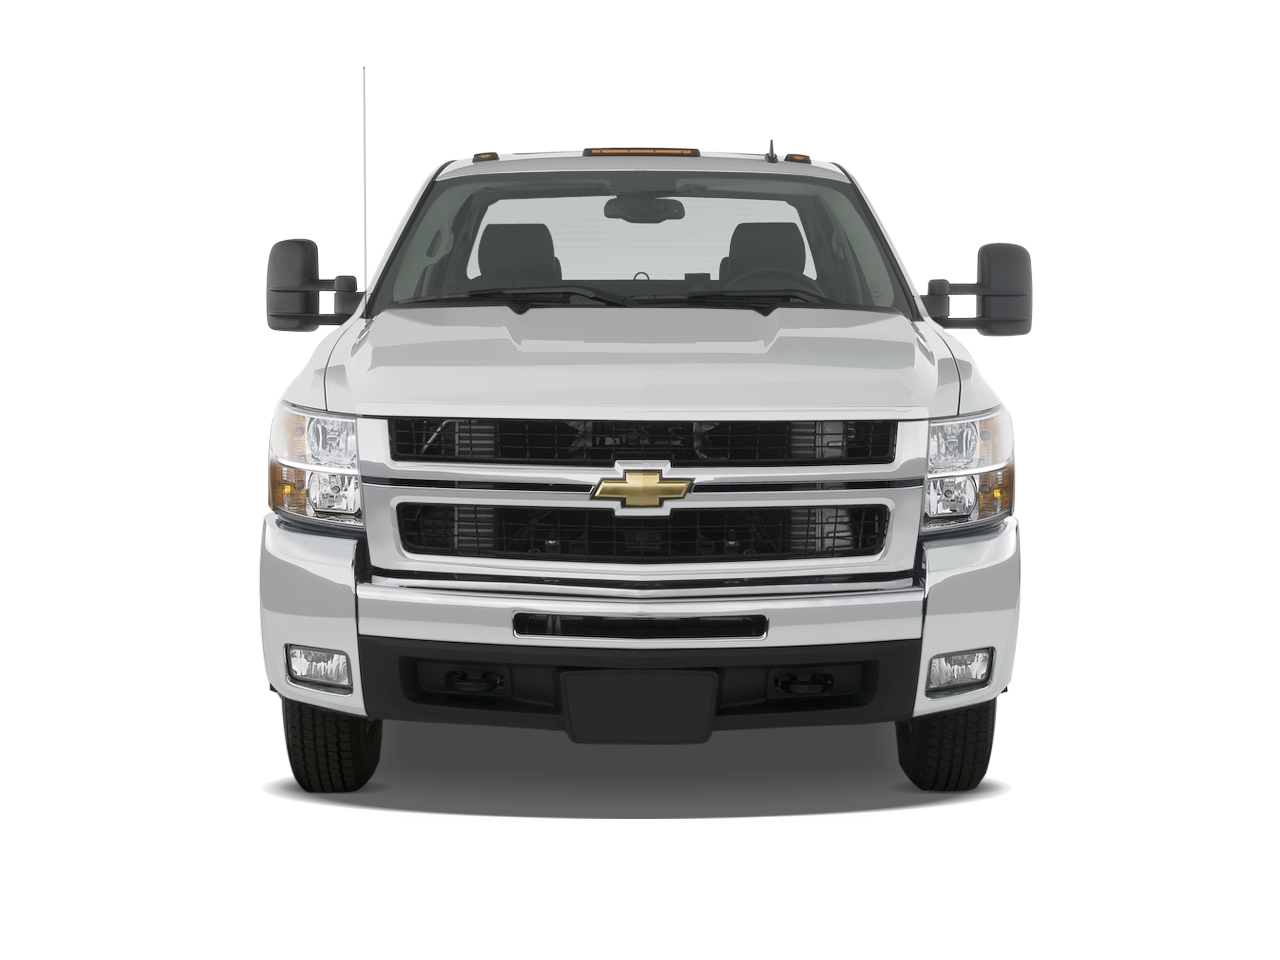 2009 chevrolet silverado hybrid first drive review chevy hybrid pickup truck automobile. Black Bedroom Furniture Sets. Home Design Ideas